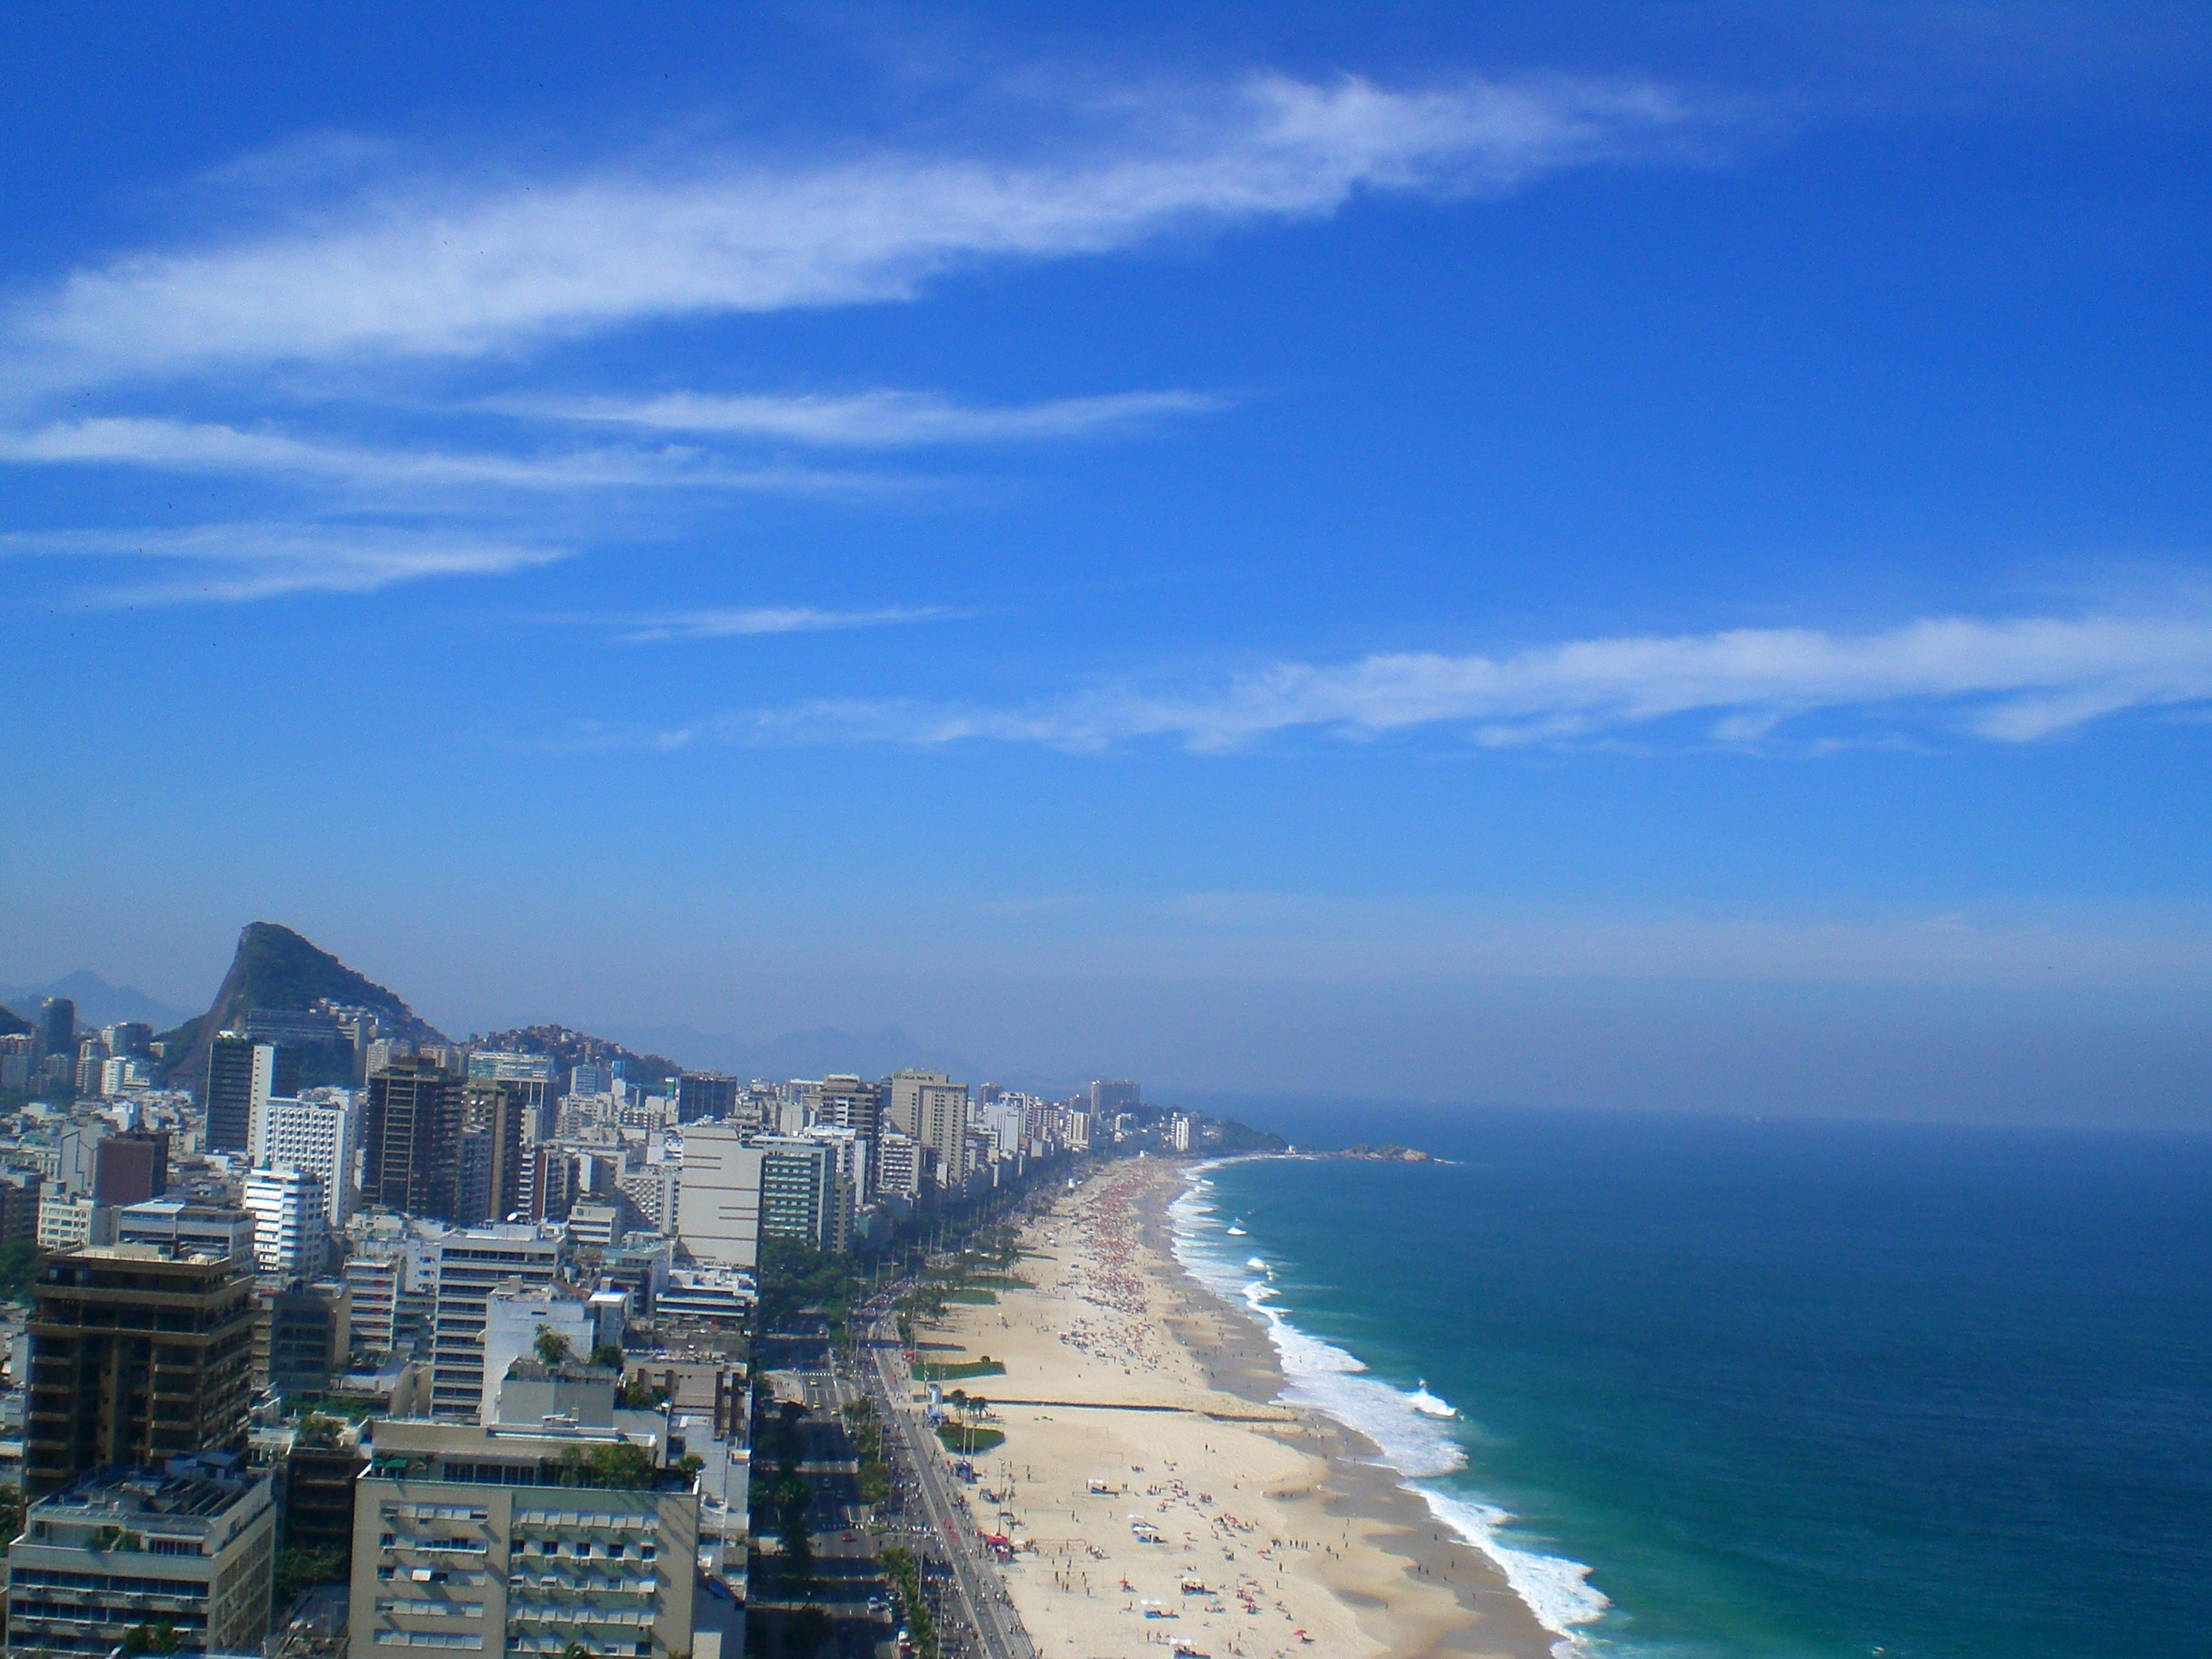 Startup Weekend Rio: how to create 16 startups in 3 days